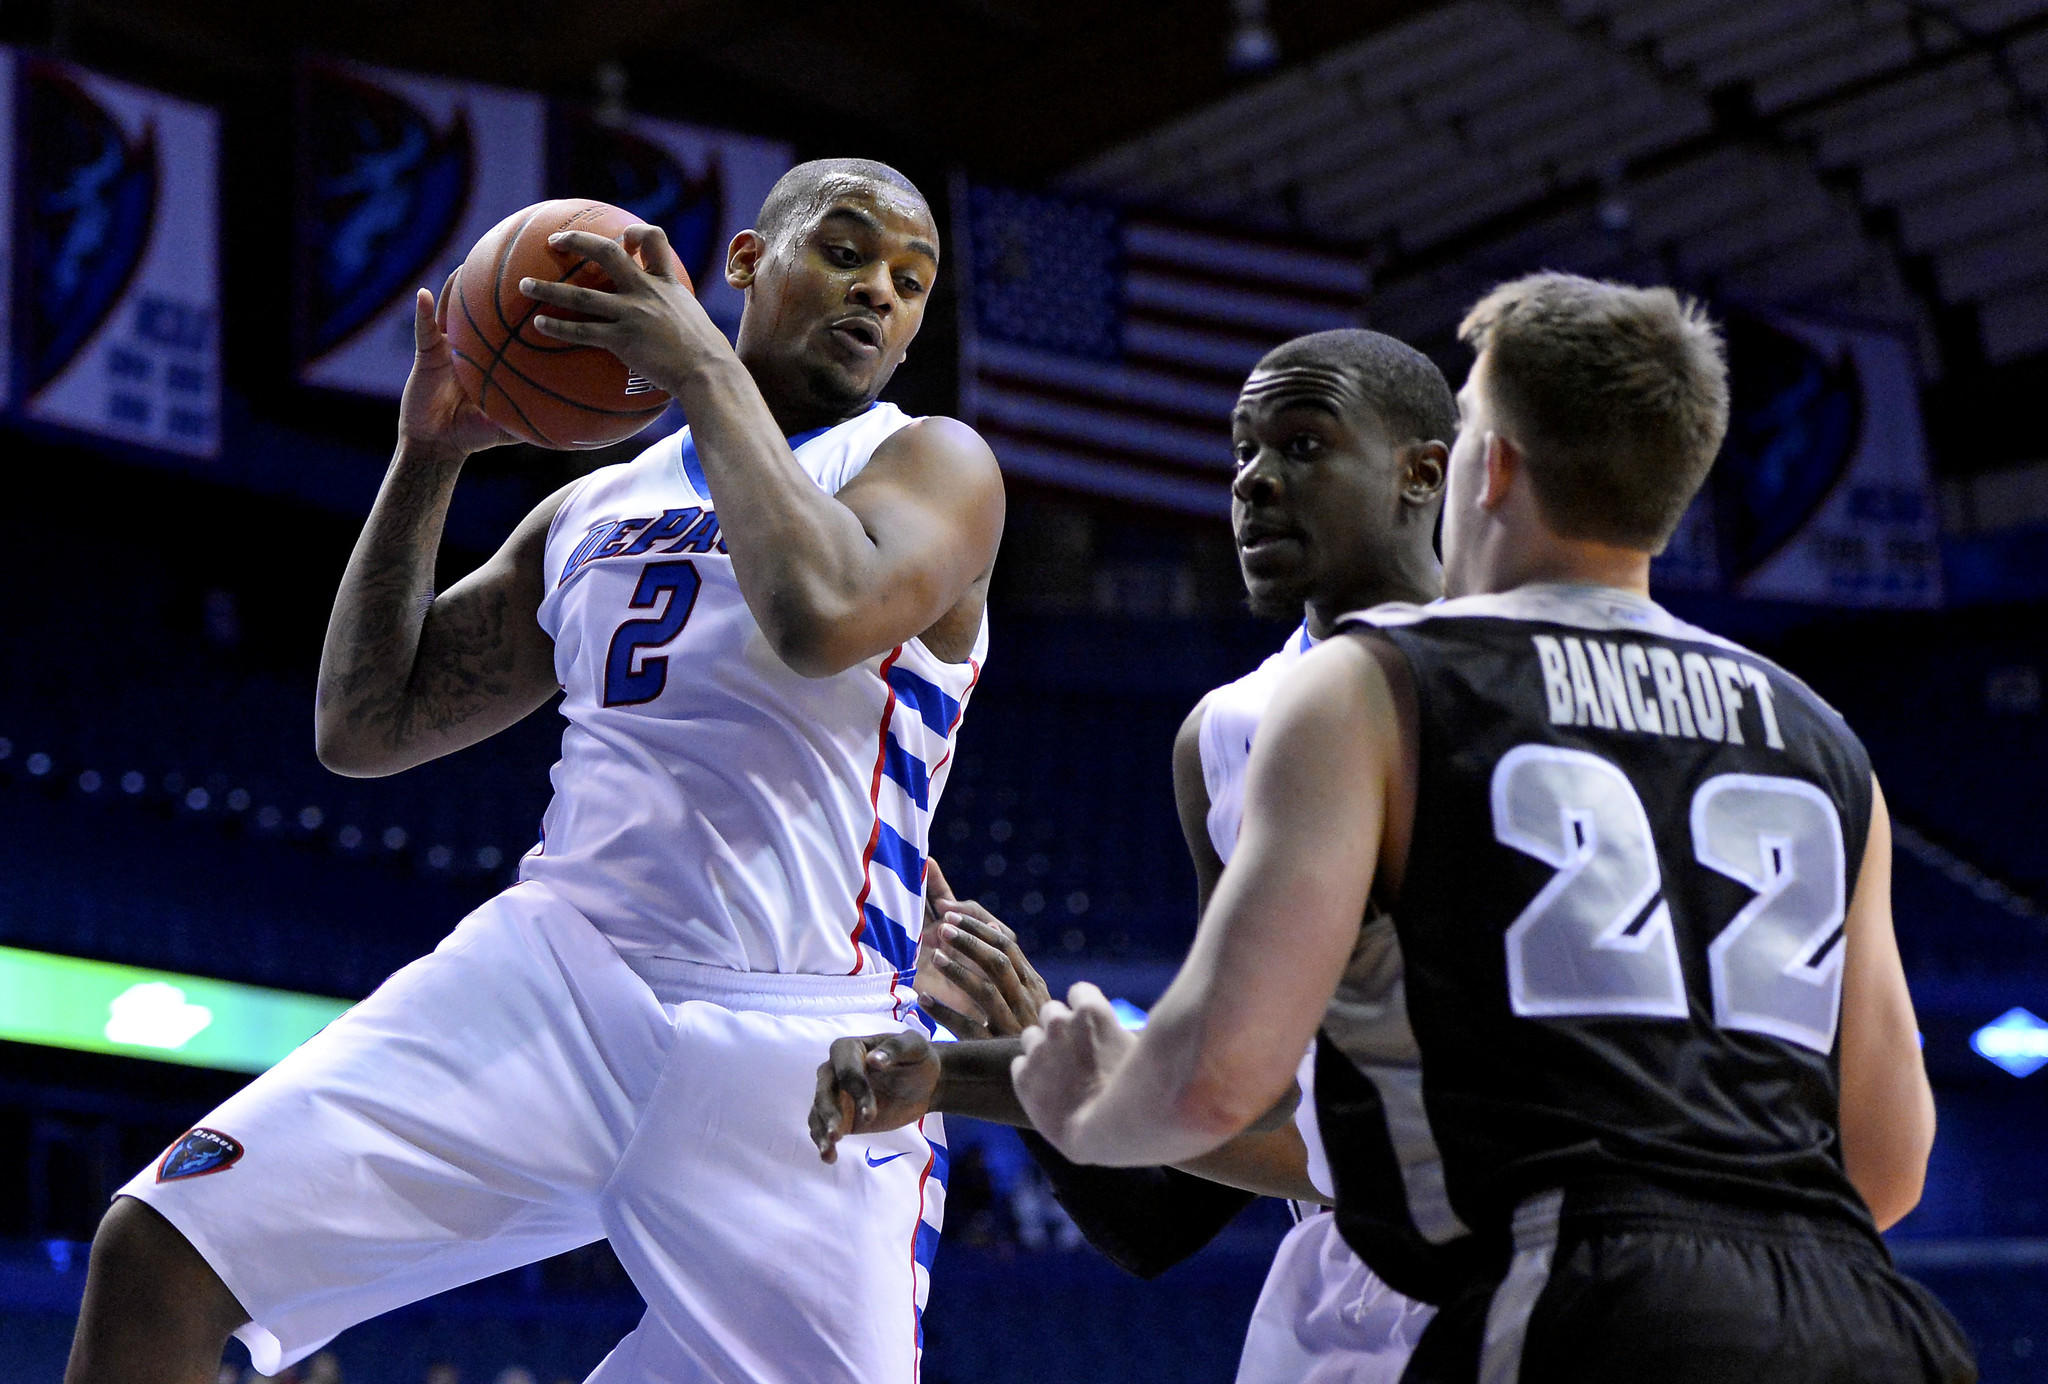 DePaul center Tommy Hamilton IV grabs a rebound against Providence guard Ted Bancroft.